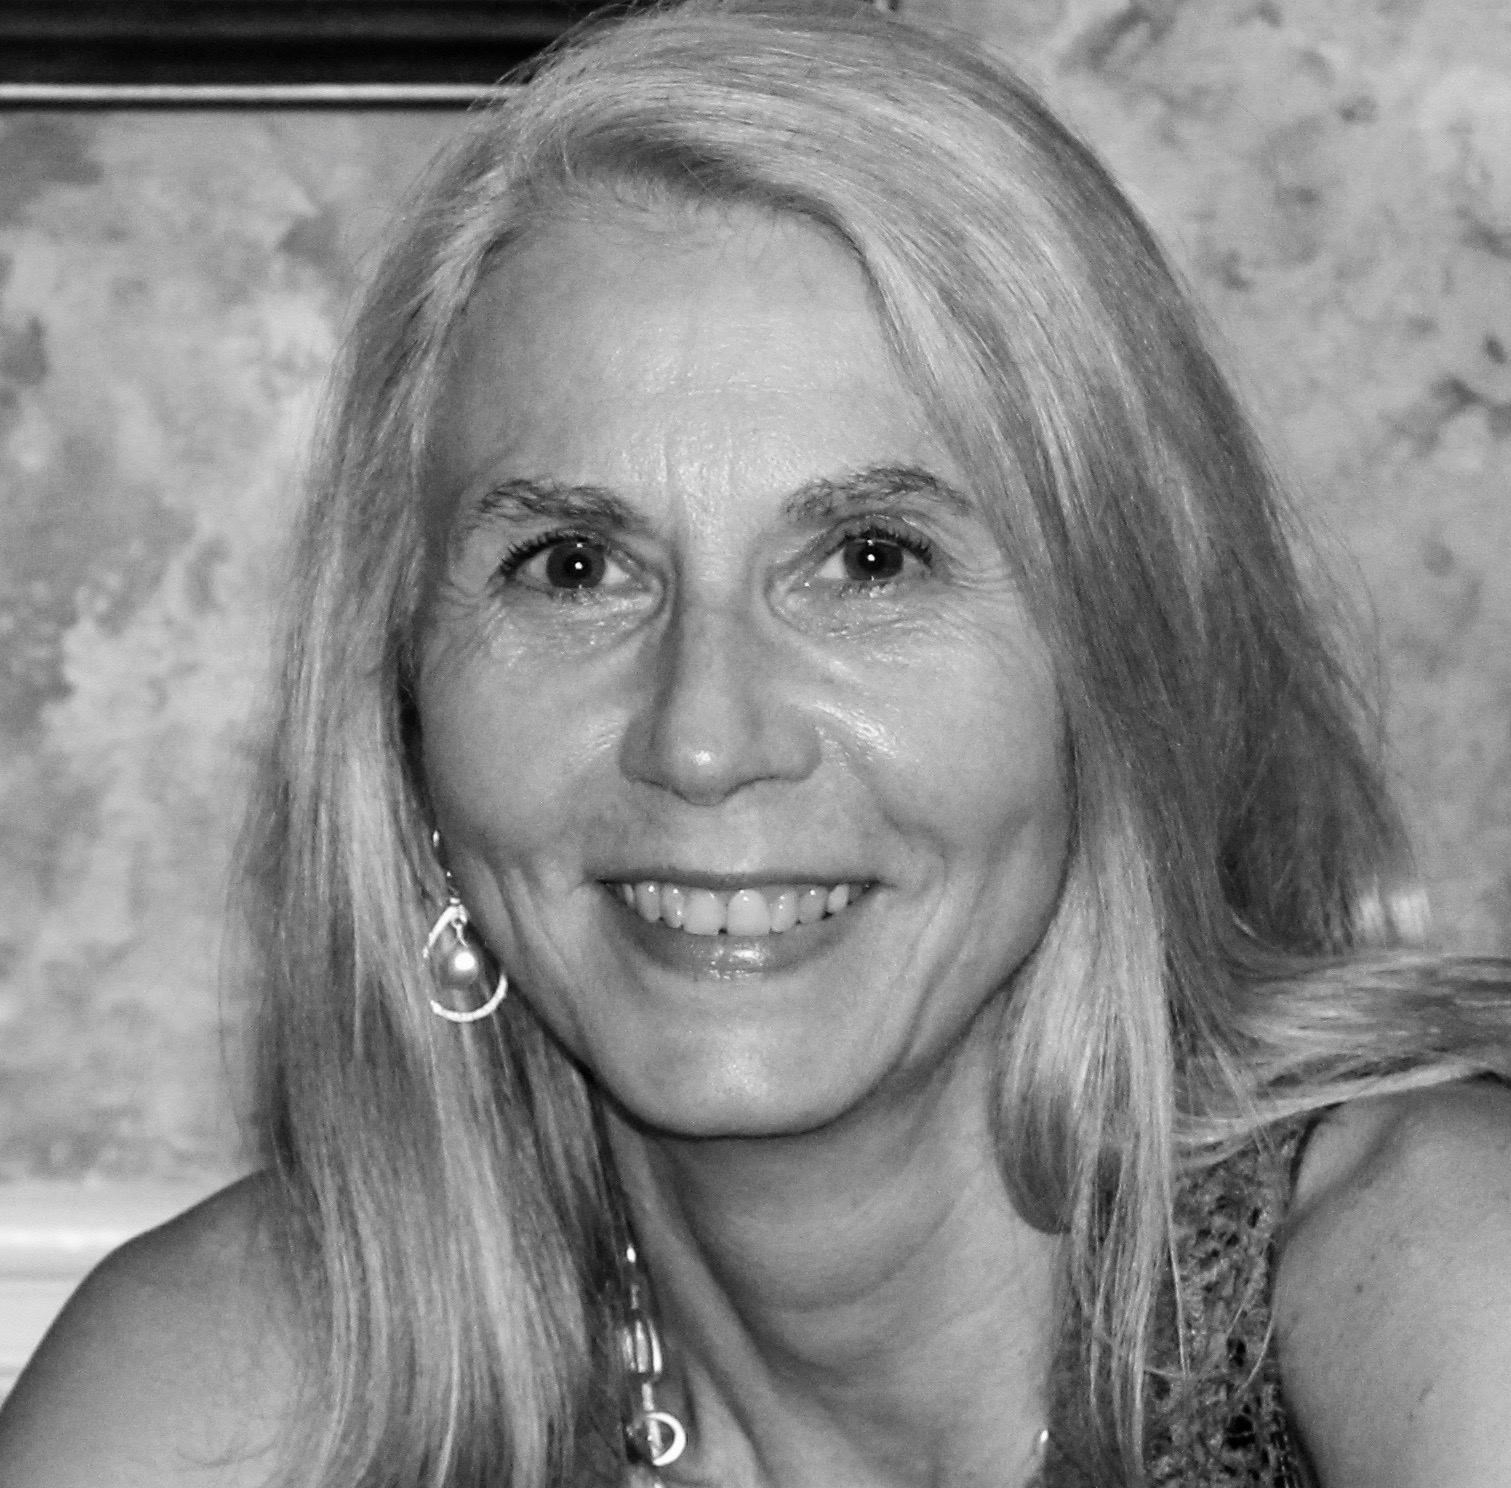 Janet (Koshin) Sims  is a psychologist, author, and was once described by a friend as 'an emotionally intelligent geek'. In 1997 Thich Nhat Hanh opened The Green Mountain Dharma Center just a few miles from her home in Vermont....  Read More...